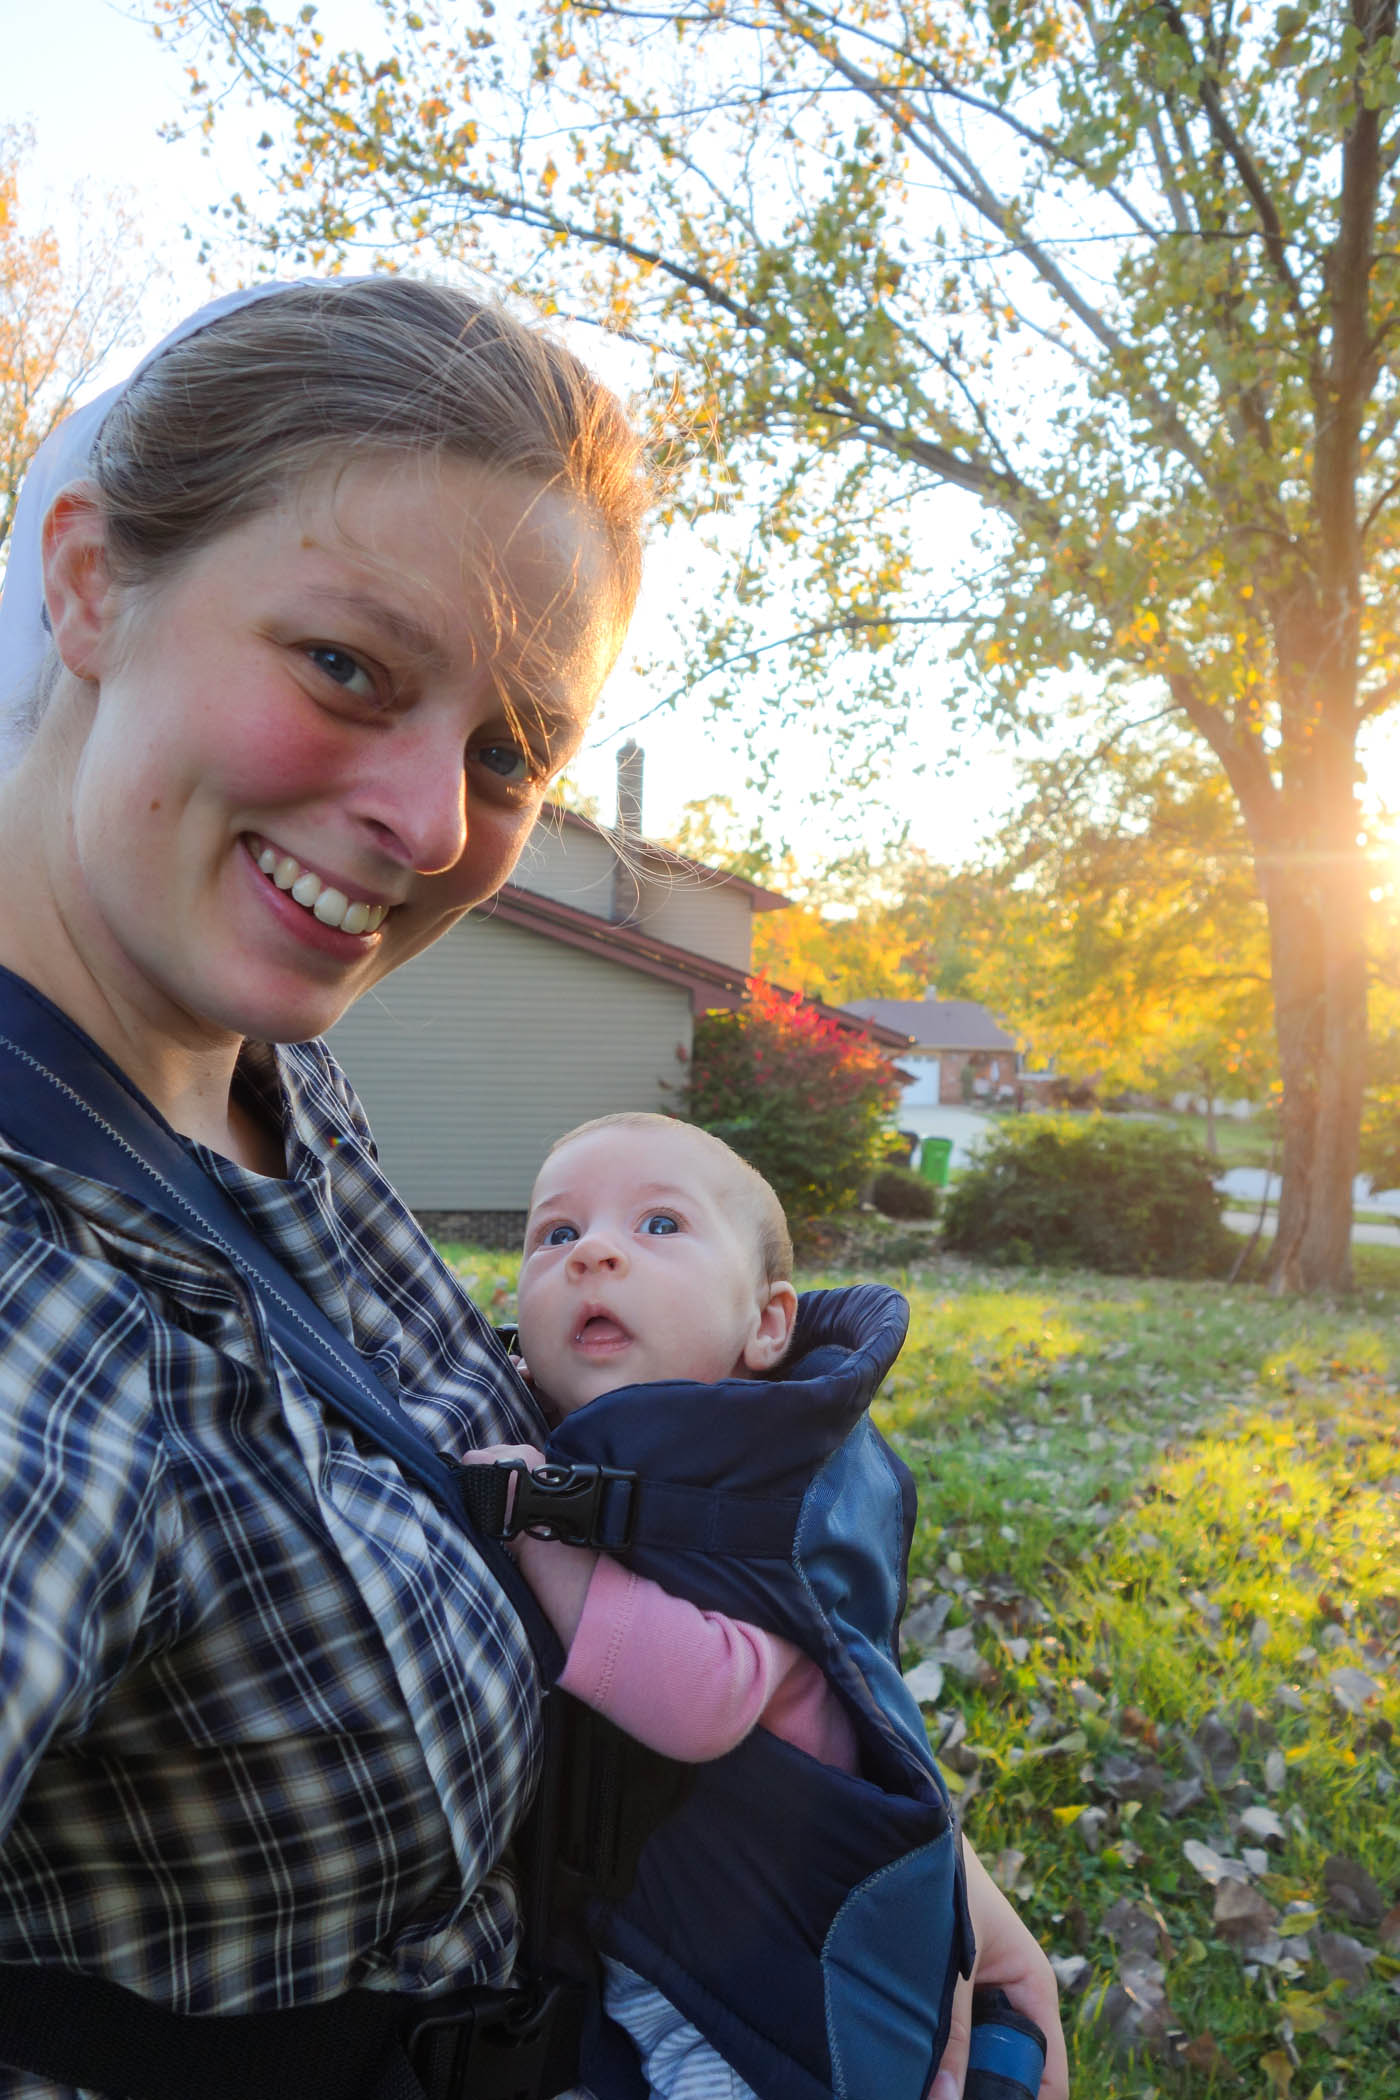 This is a picture of Briana carrying Hadassah on her chest in a baby carrier, golden sunlight streaming through a tree in the background.